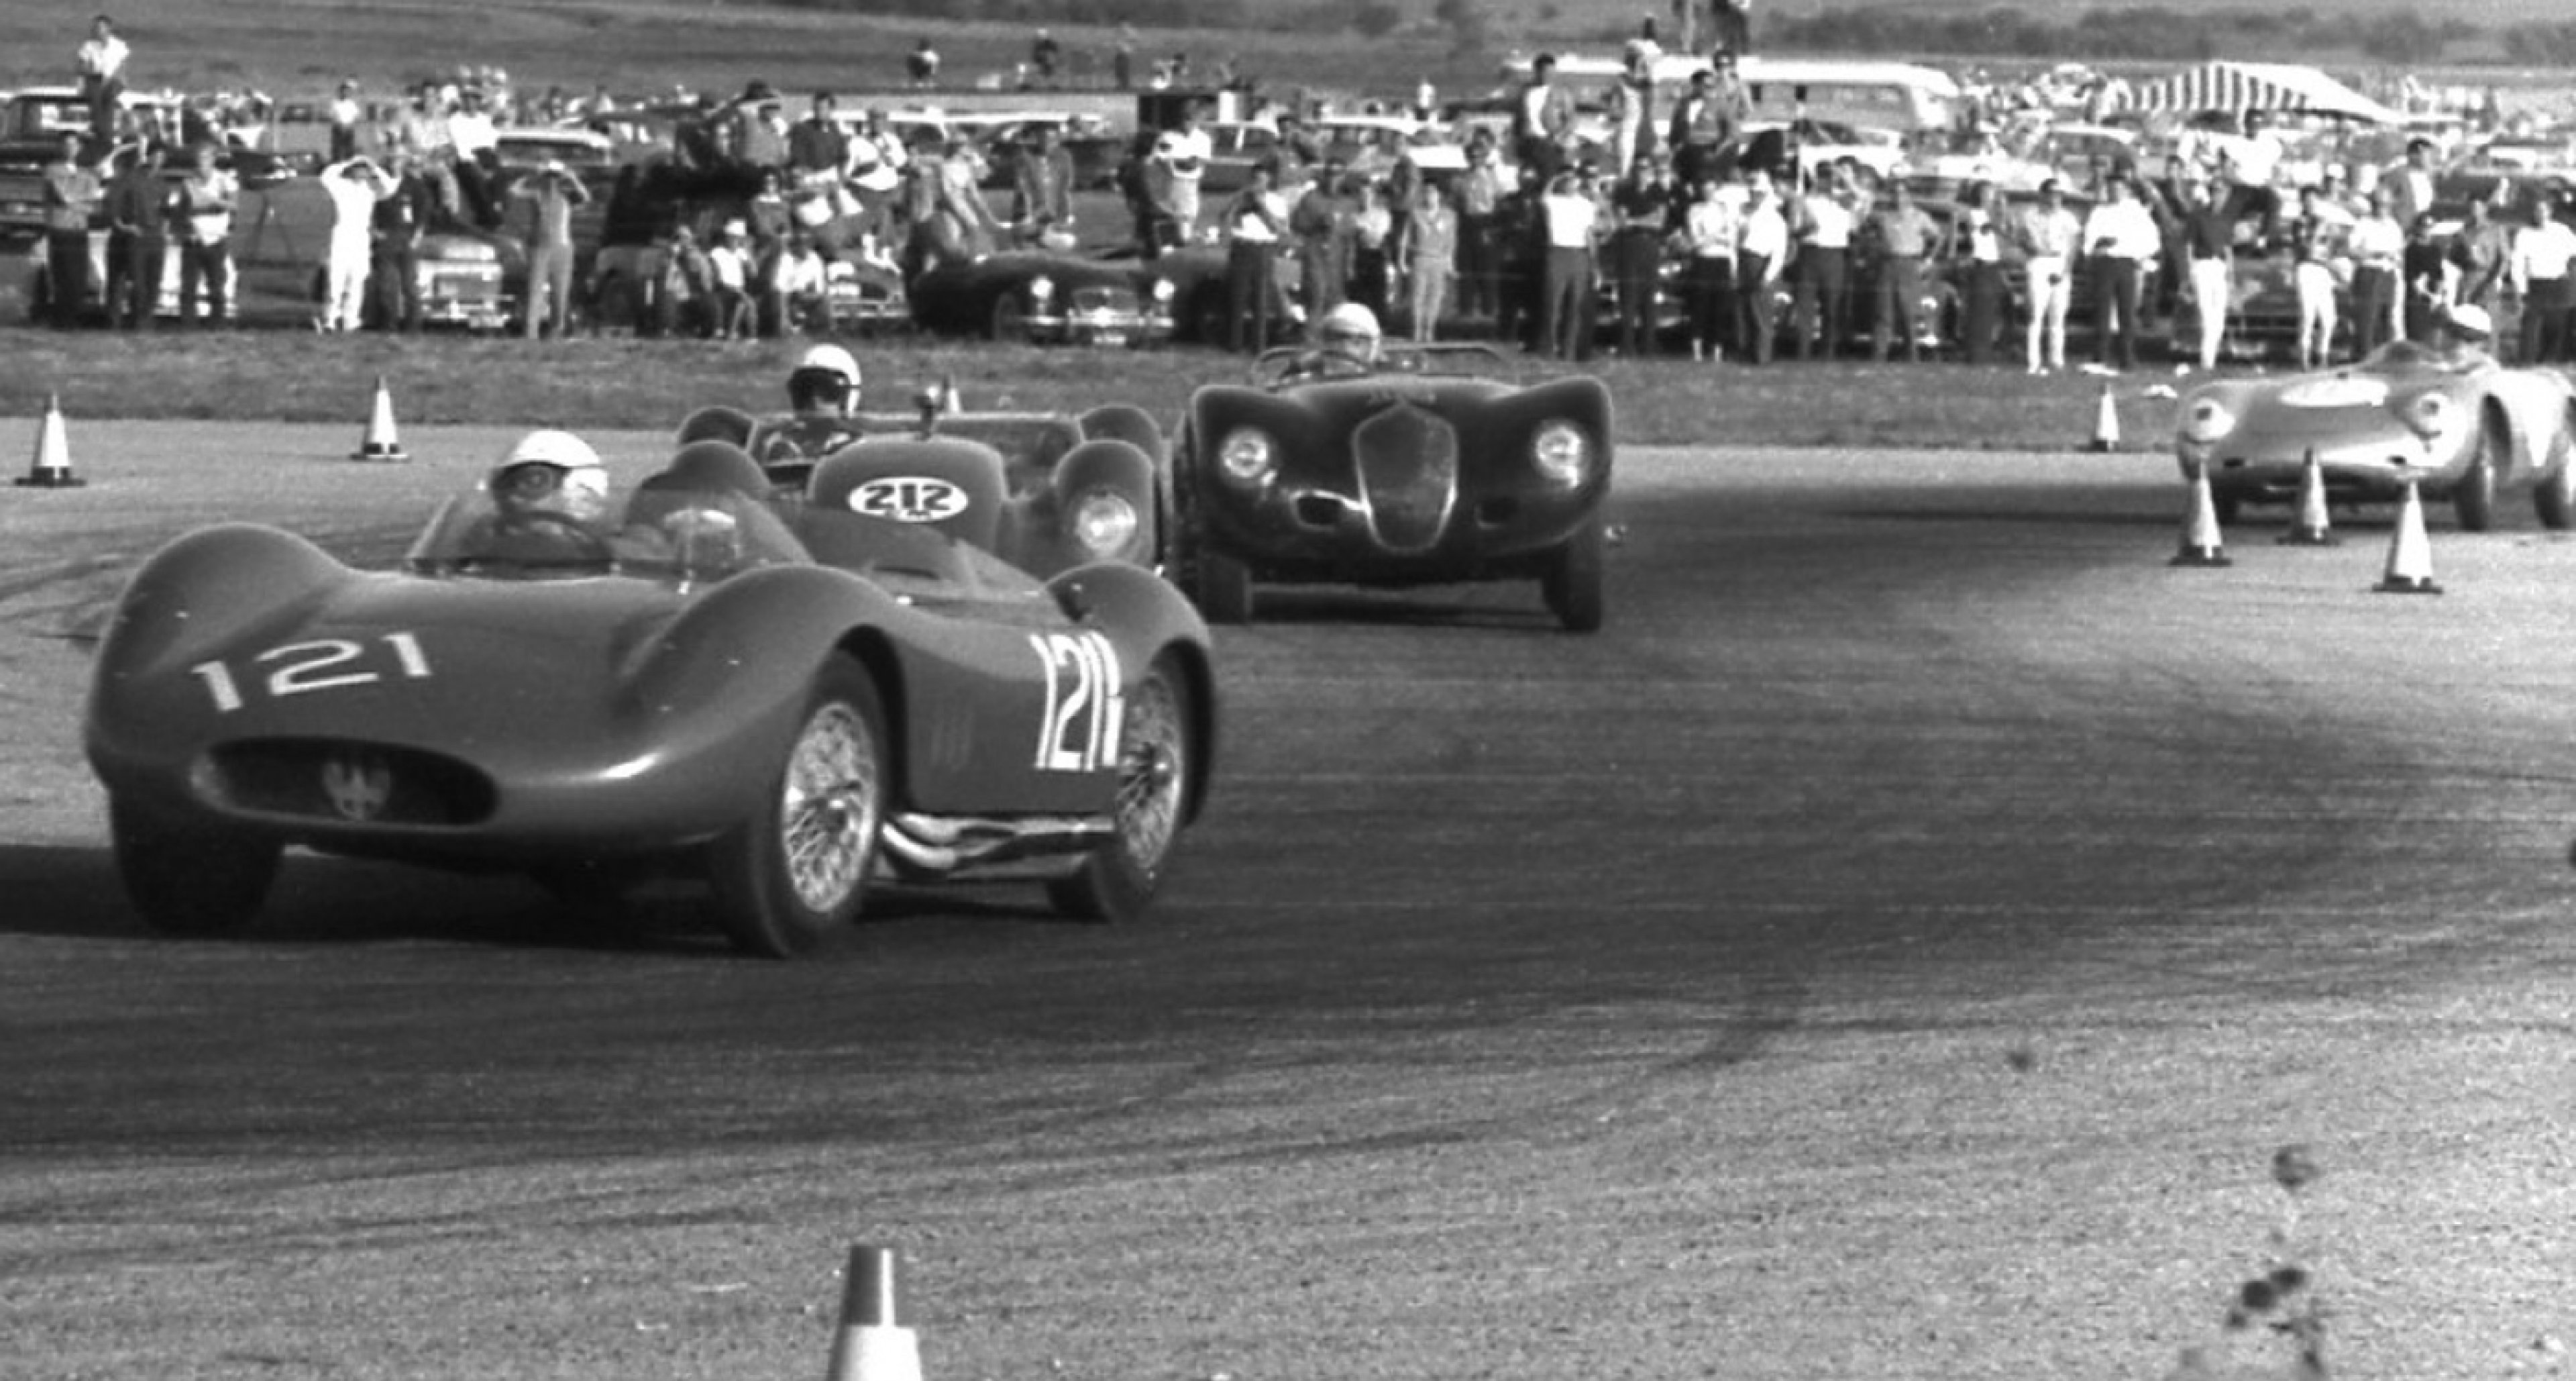 Bobby Aylward racing in his Maserati 250S #2431 (Copyright Willem Oosthoek)